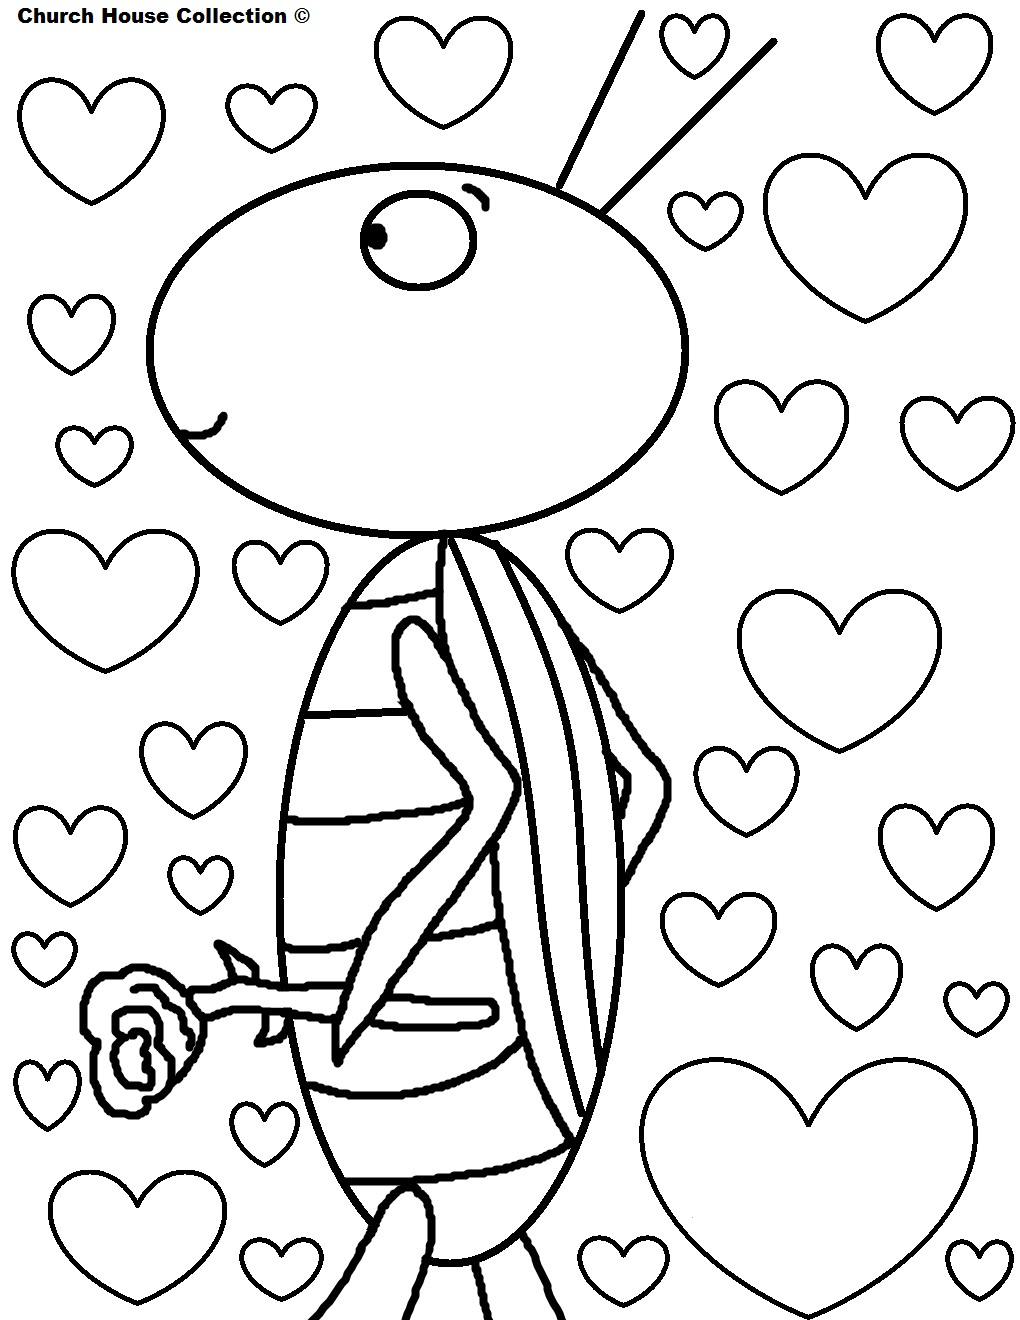 Free color pages for valentines - Happy Valentine S Day Coloring Pages Grasshopper With Hearts Grasshopper